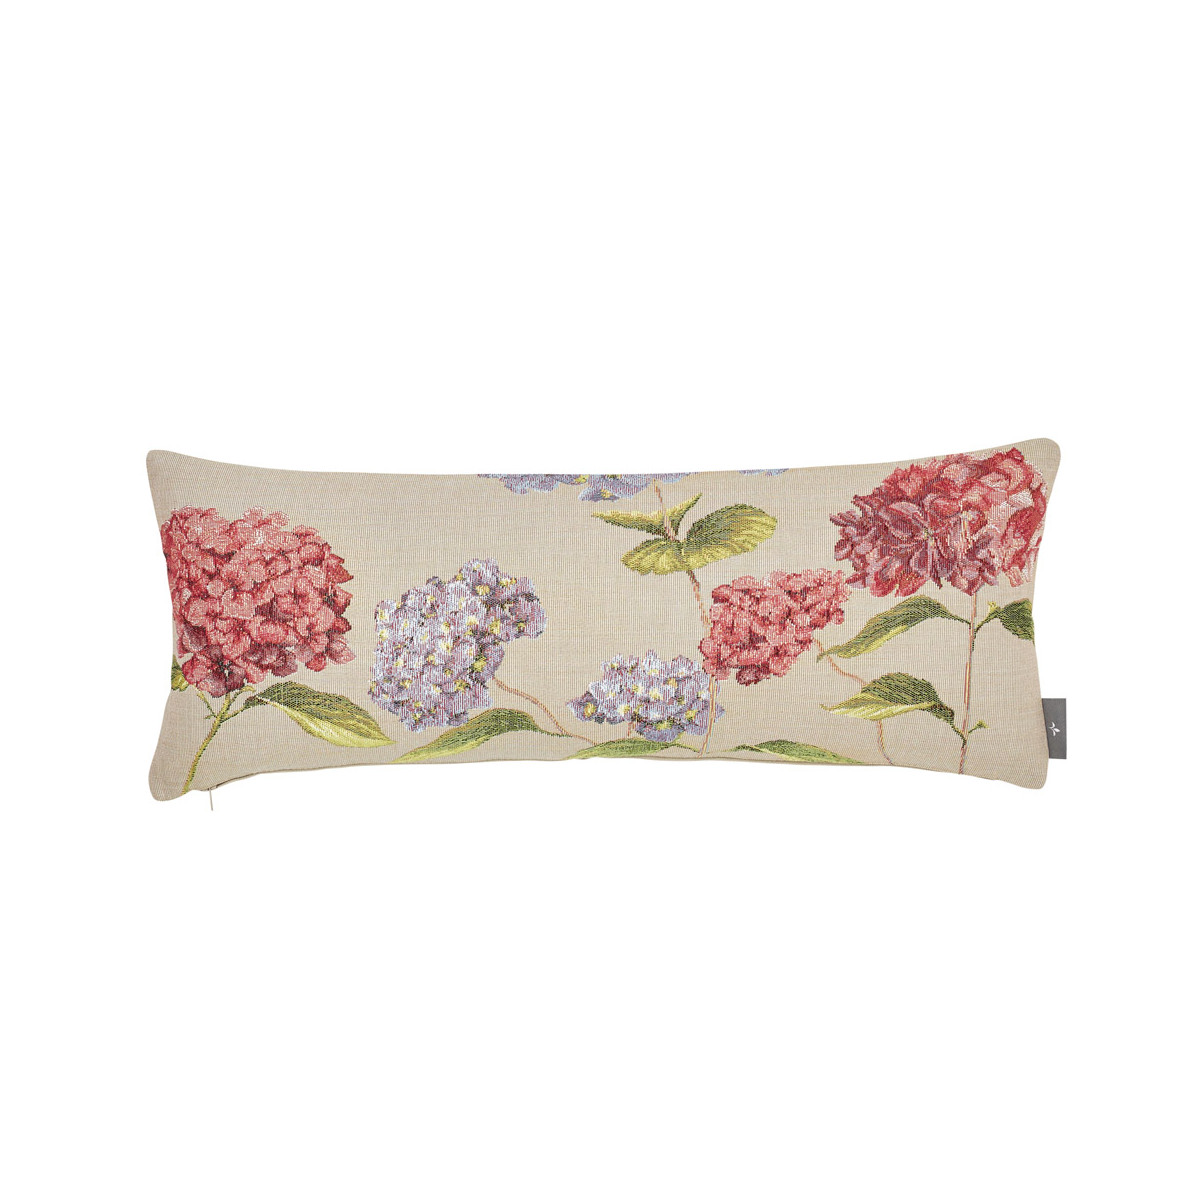 Coussin tapisserie hortensias made in france beige 25x60